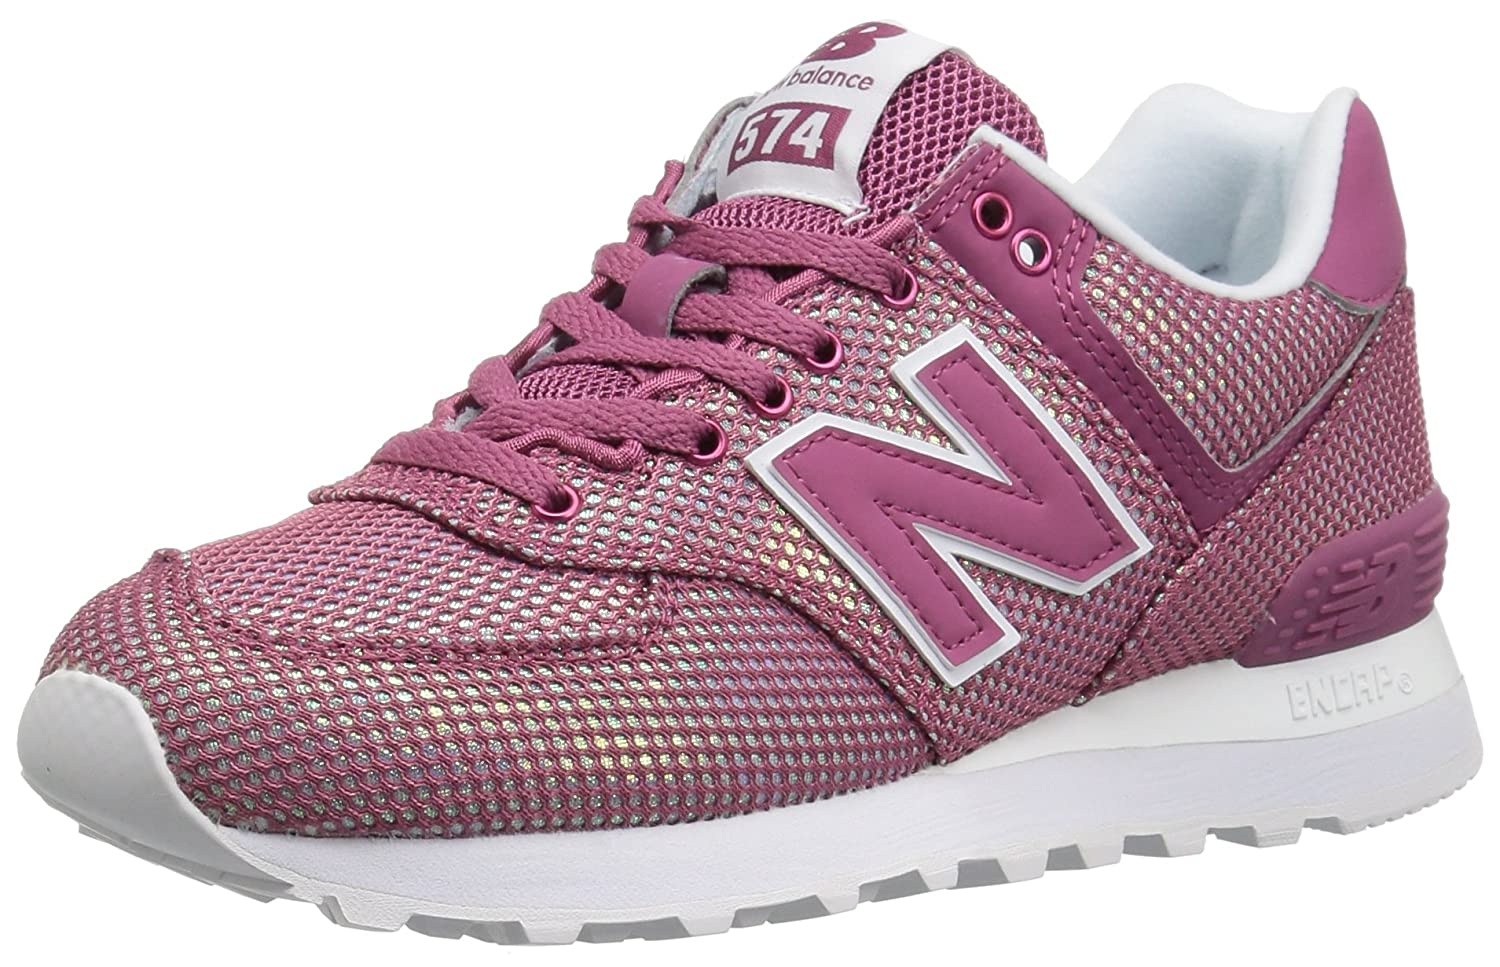 New Balance Women's 574v2 Sneaker B0751Q8LS6 6 D US|Dragon Fruit/White